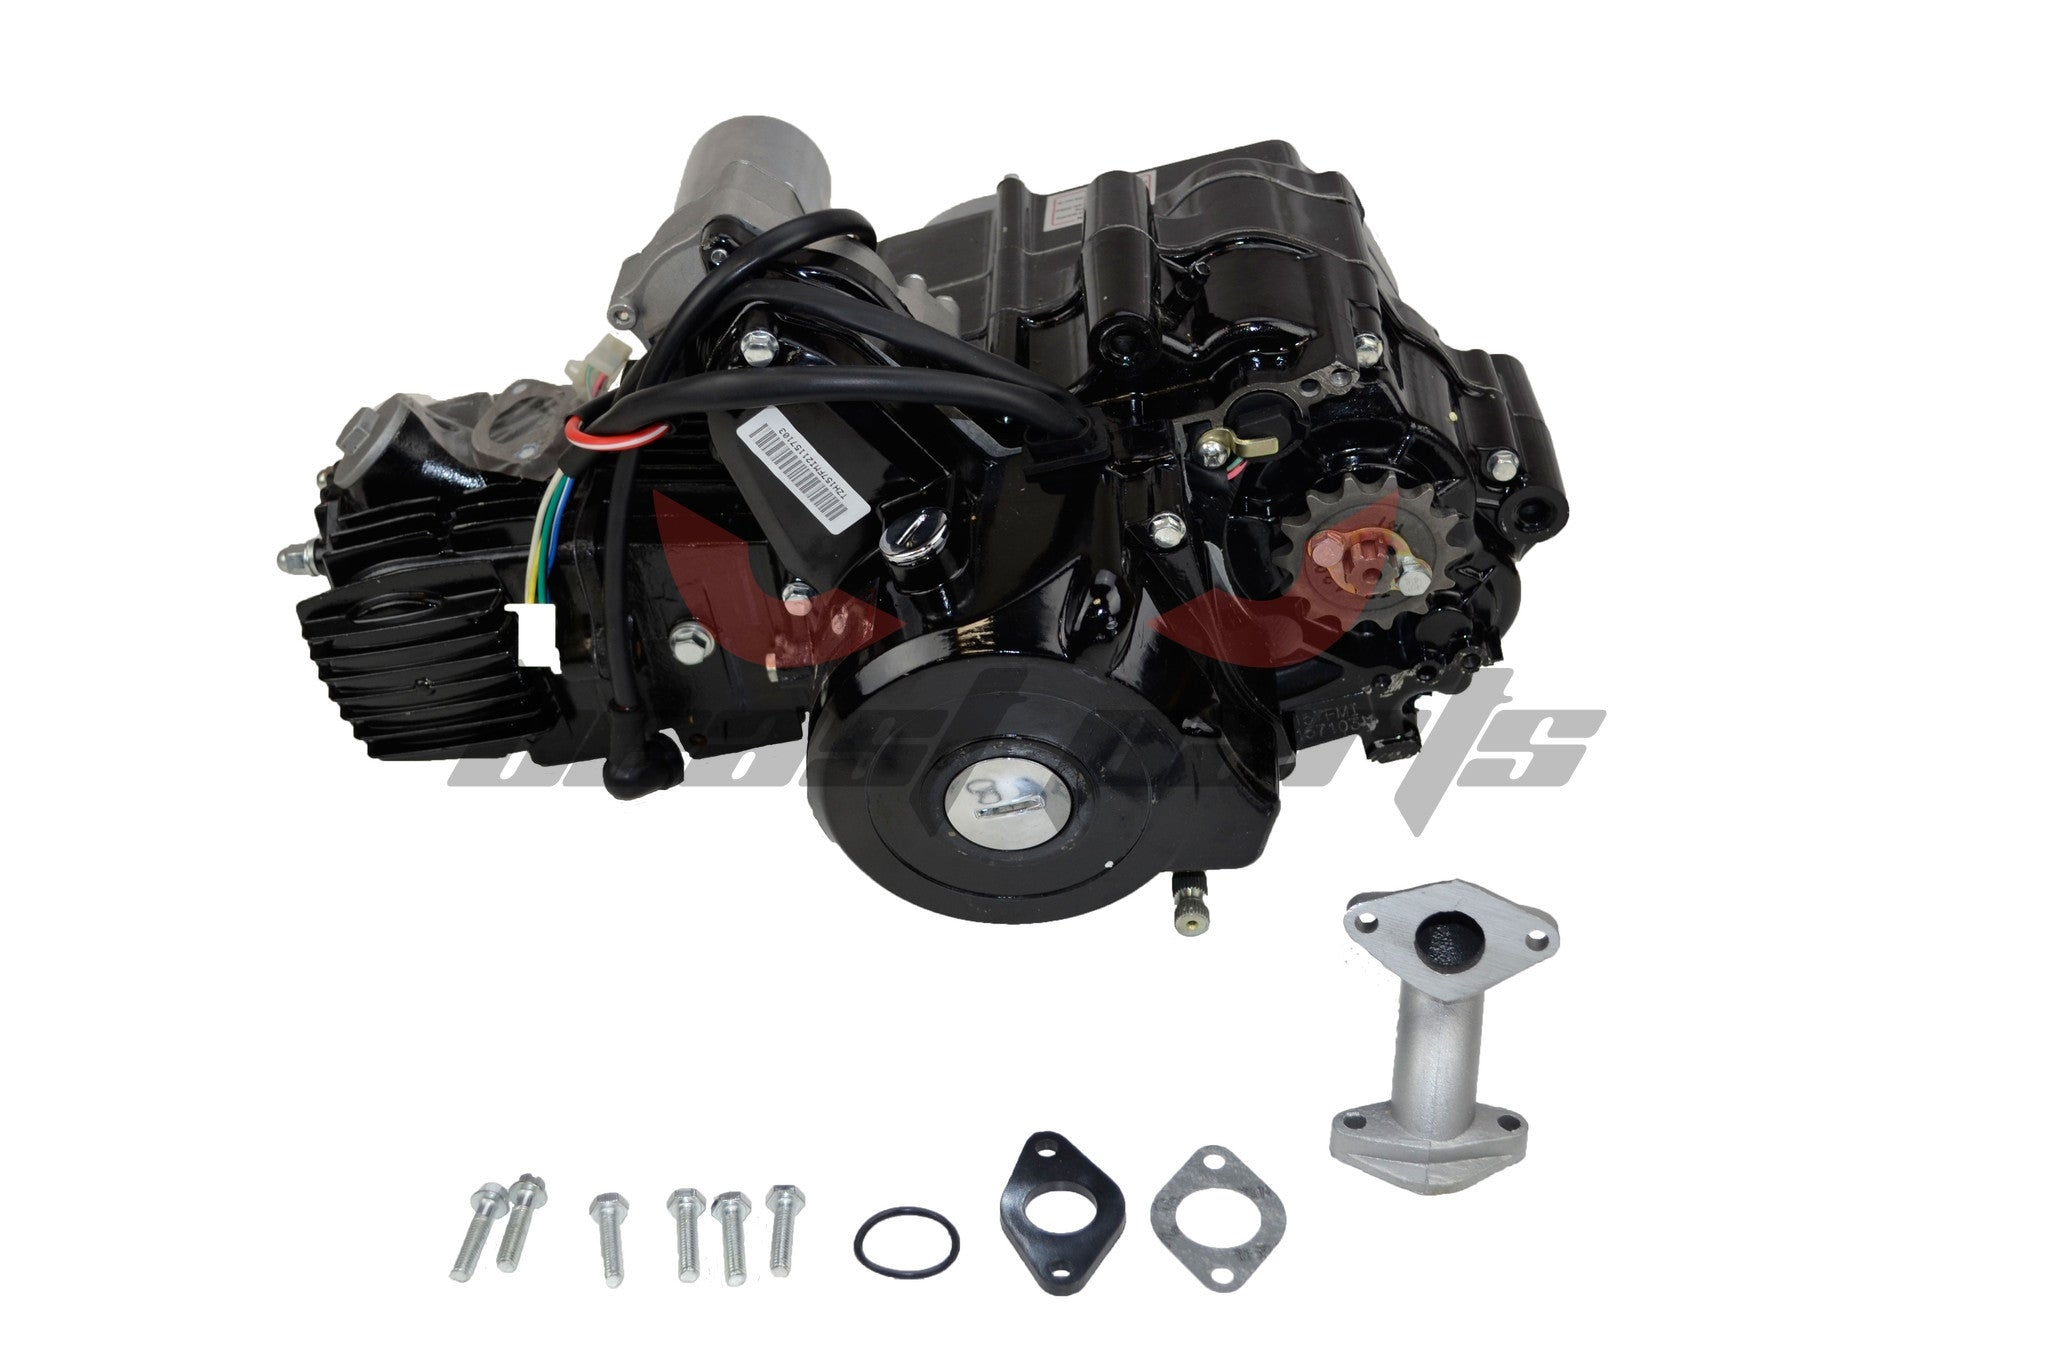 125cc 4 Speed Engine W Reverse